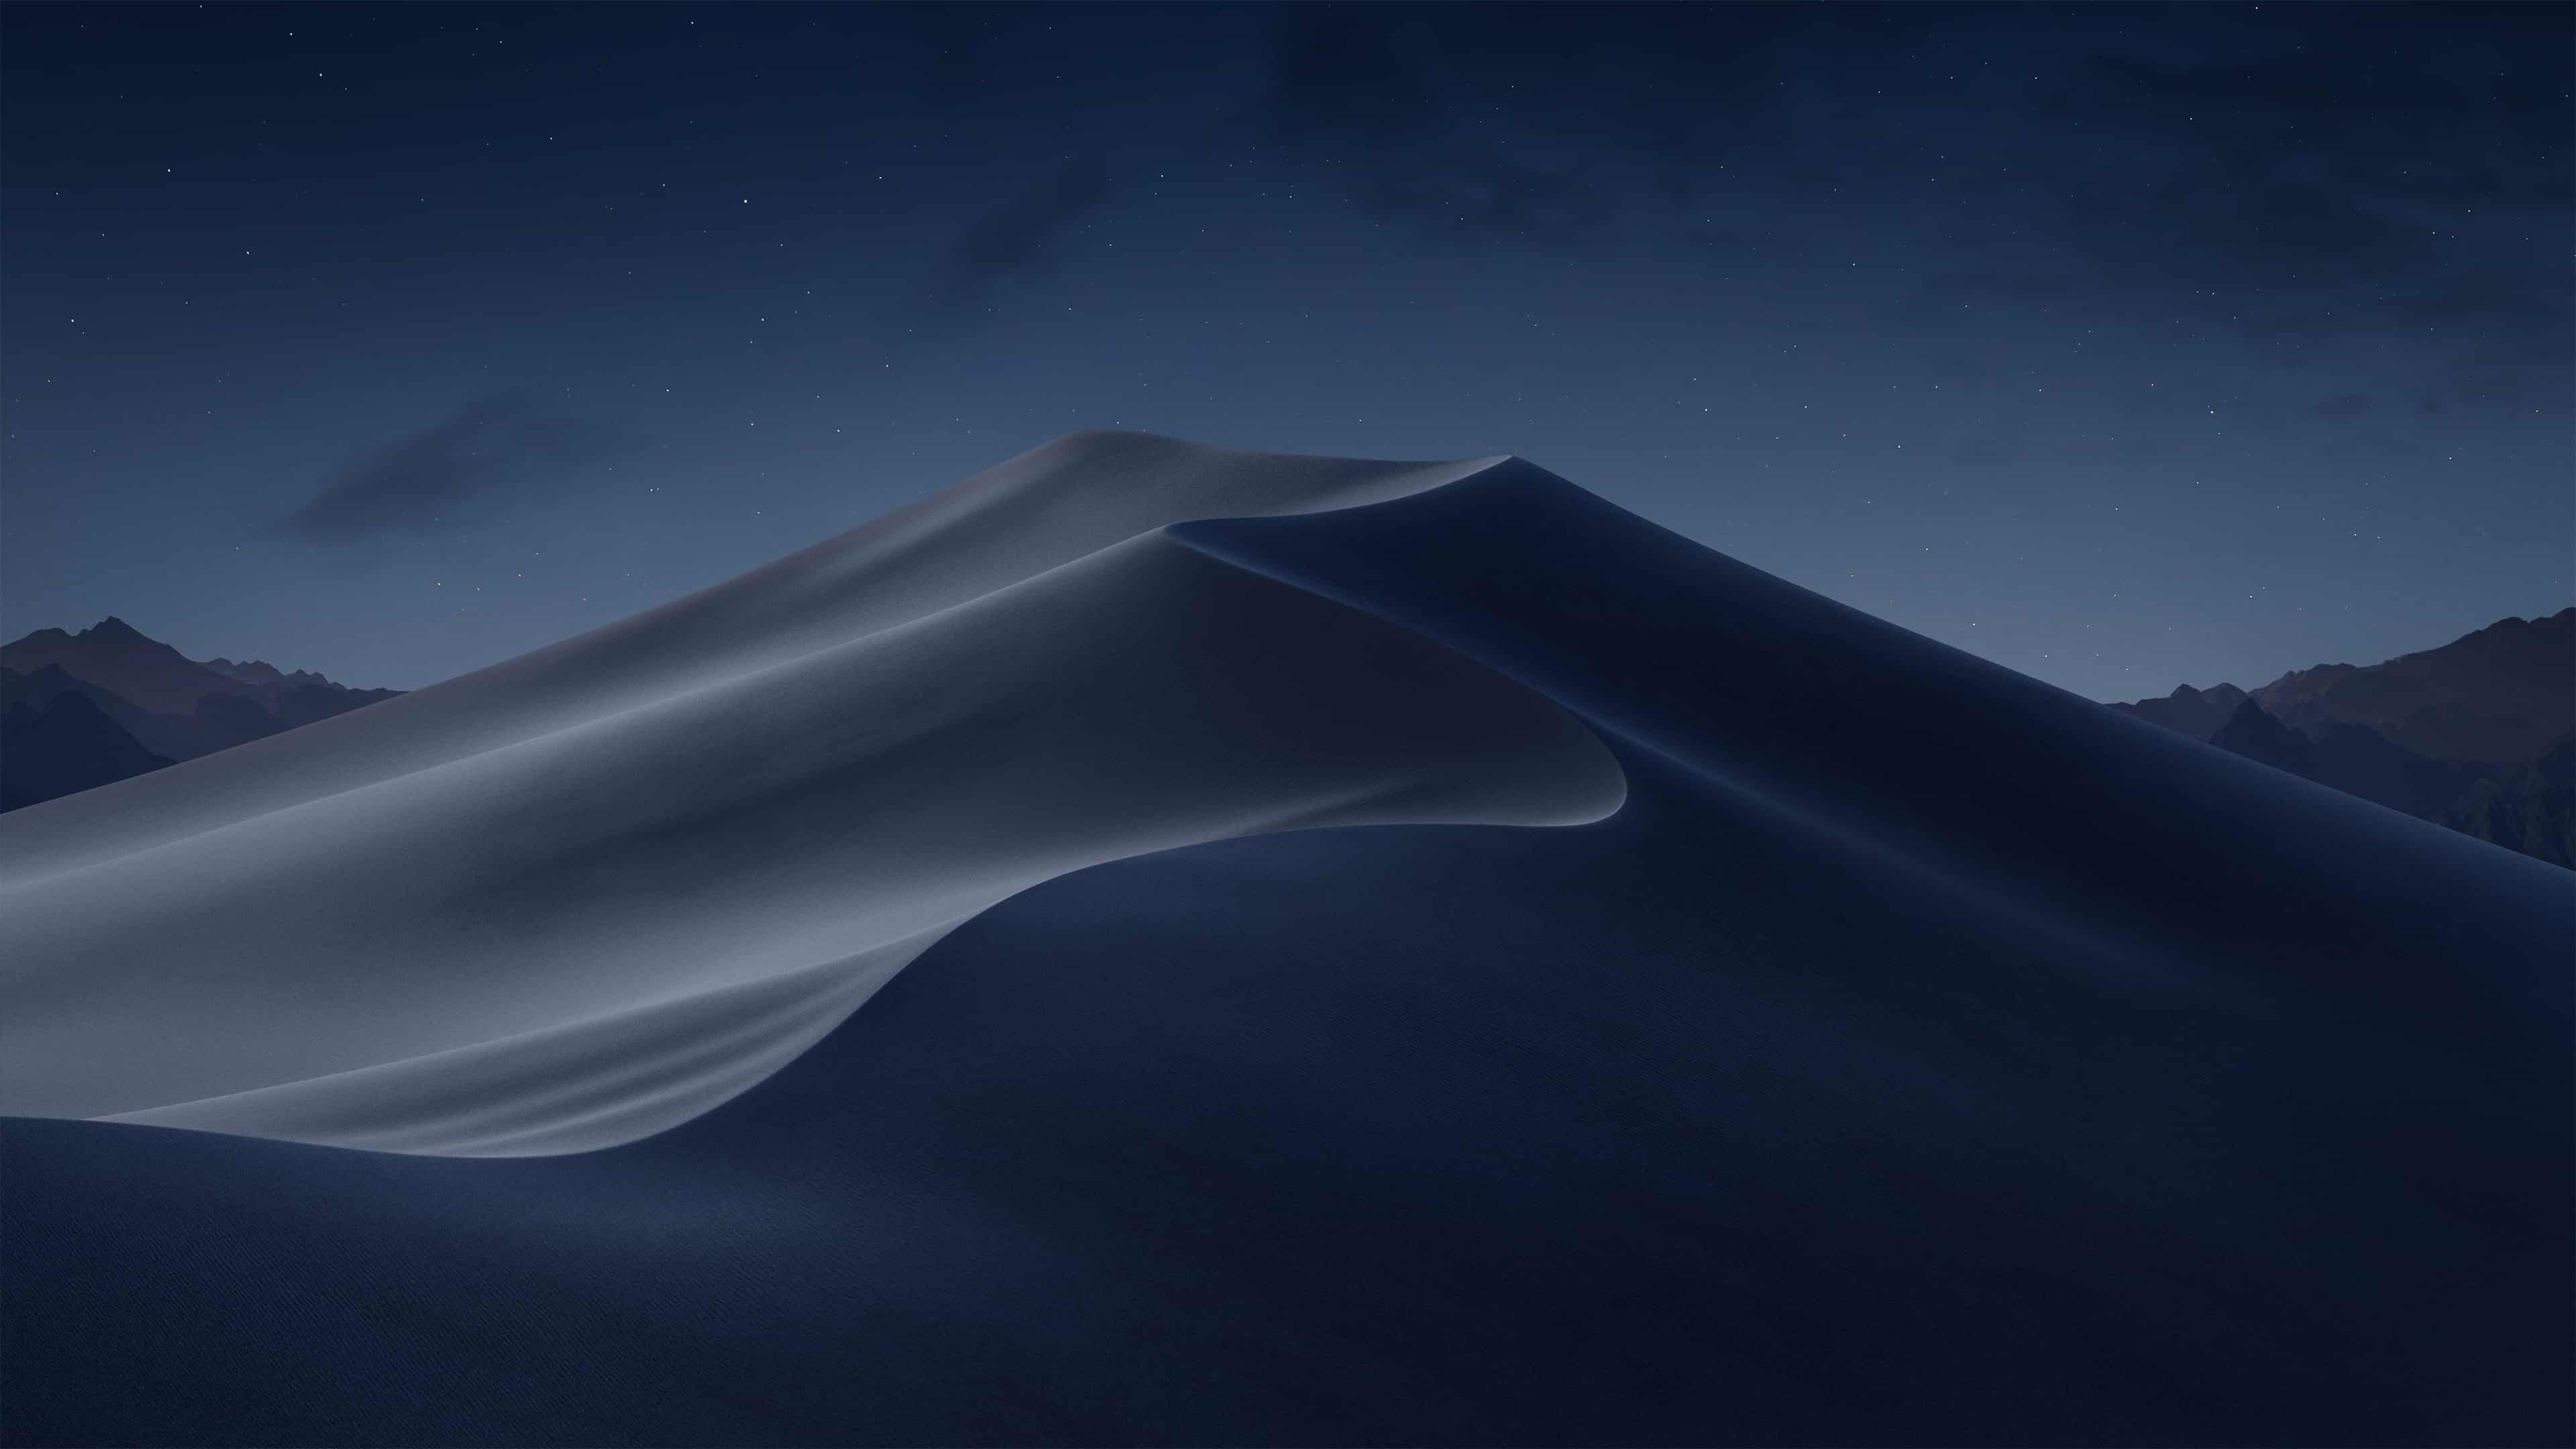 Mac OSX 1014 Mojave Night Background UHD 4K Wallpaper Pixelz 3840x2160